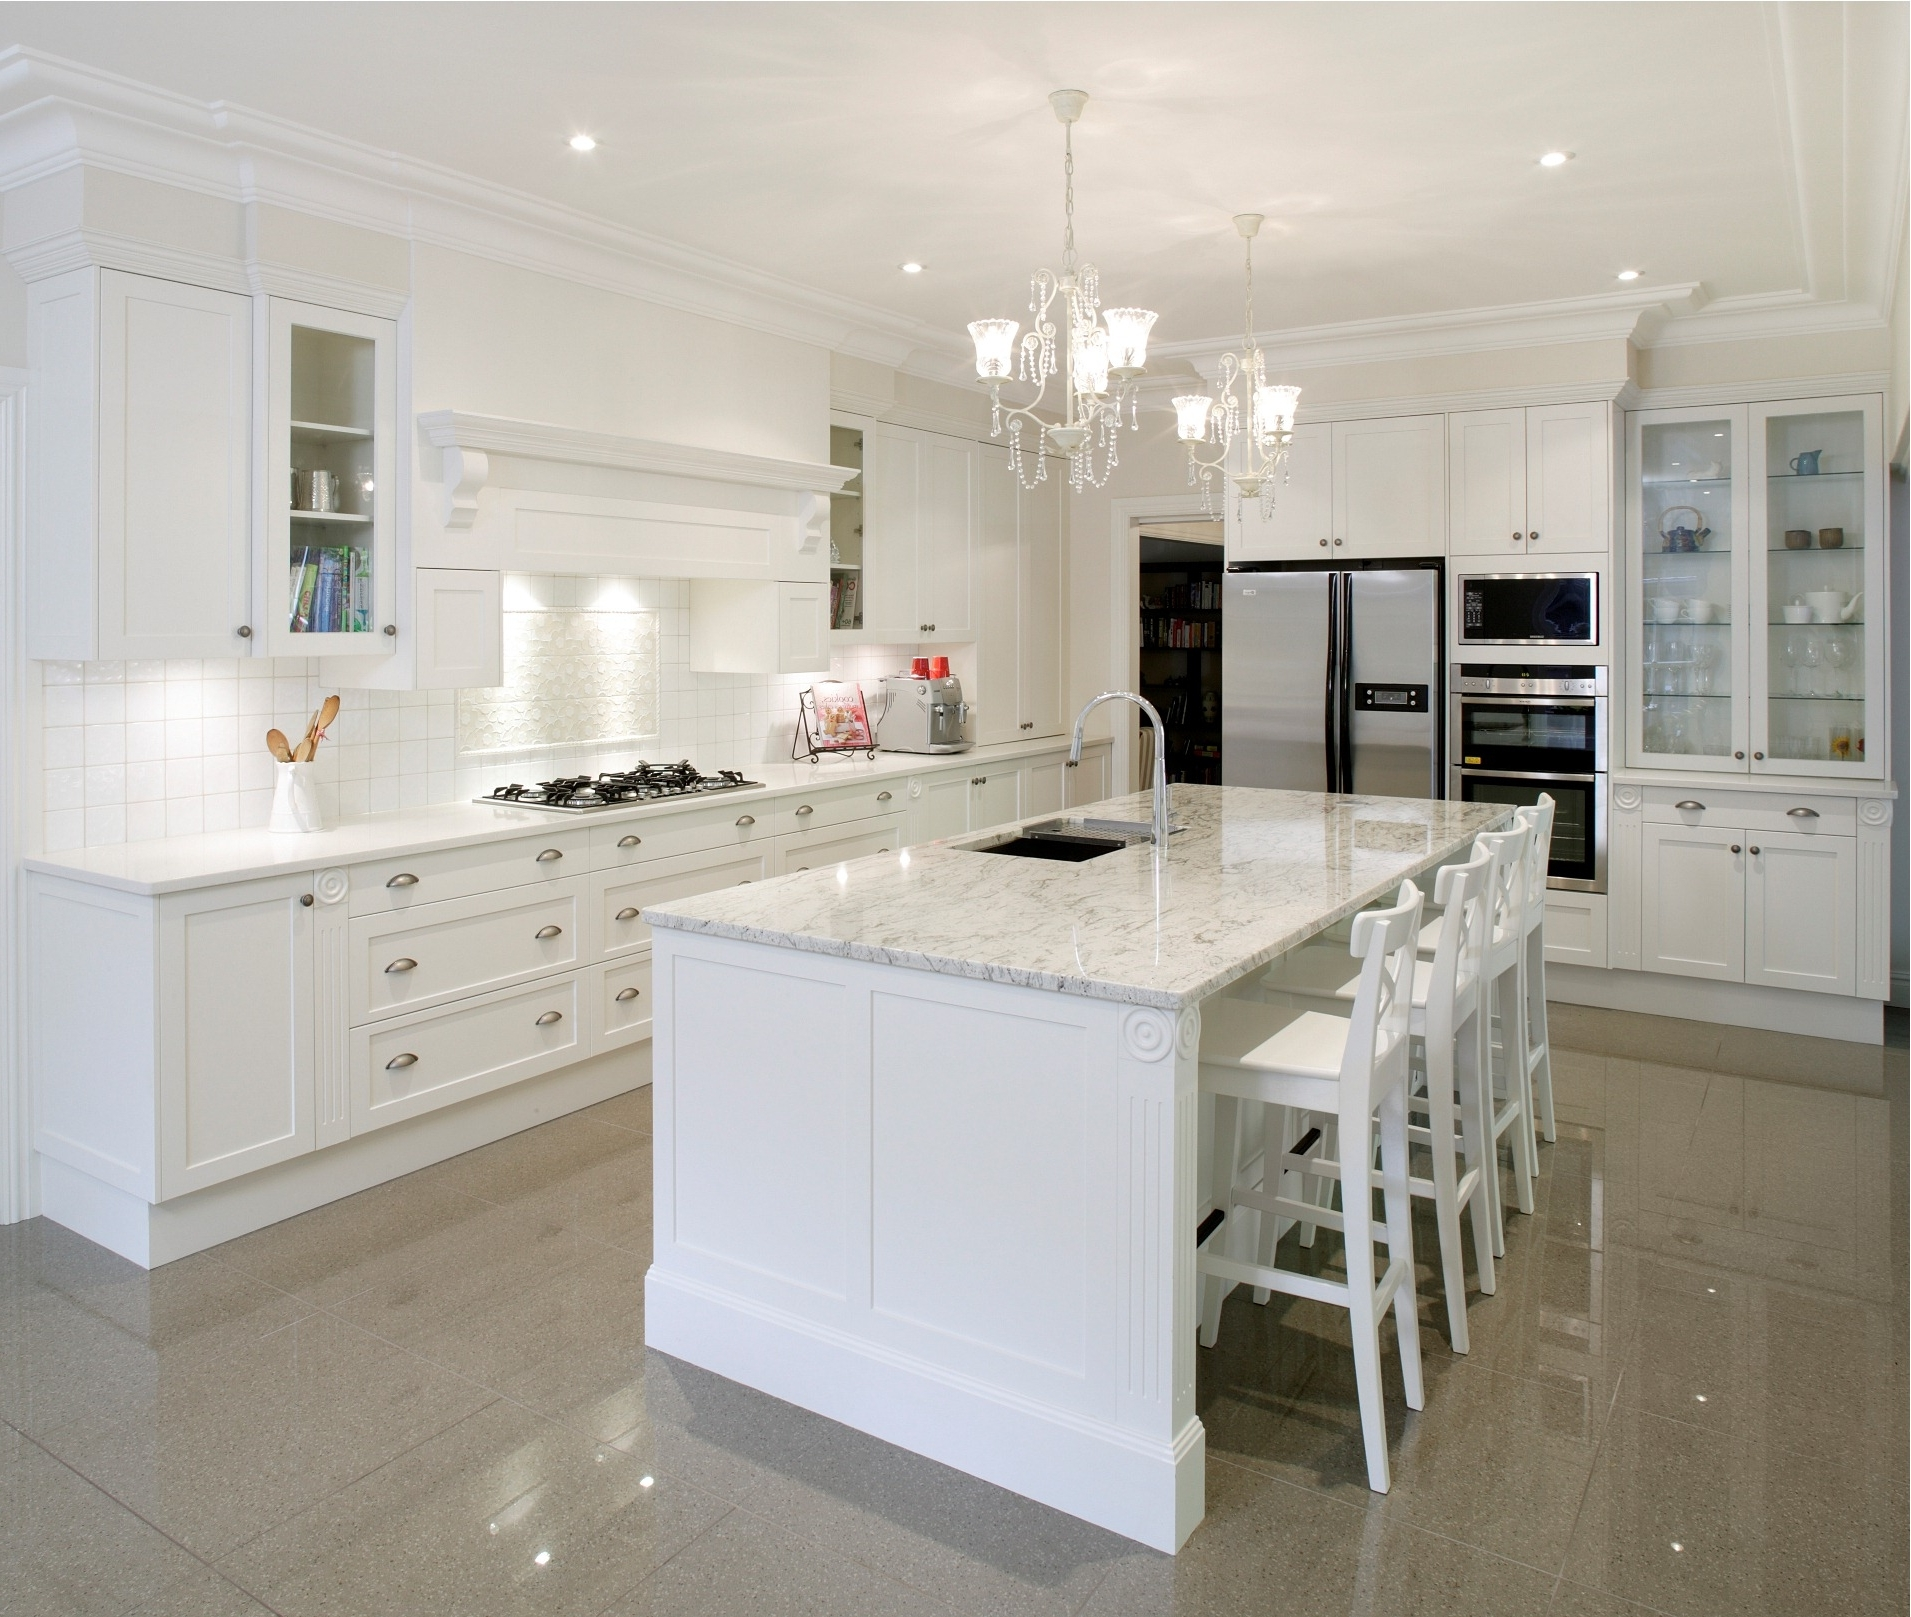 Glamorous Contemporary Kitchen Interior With Classic Nuance (Image 5 of 8)